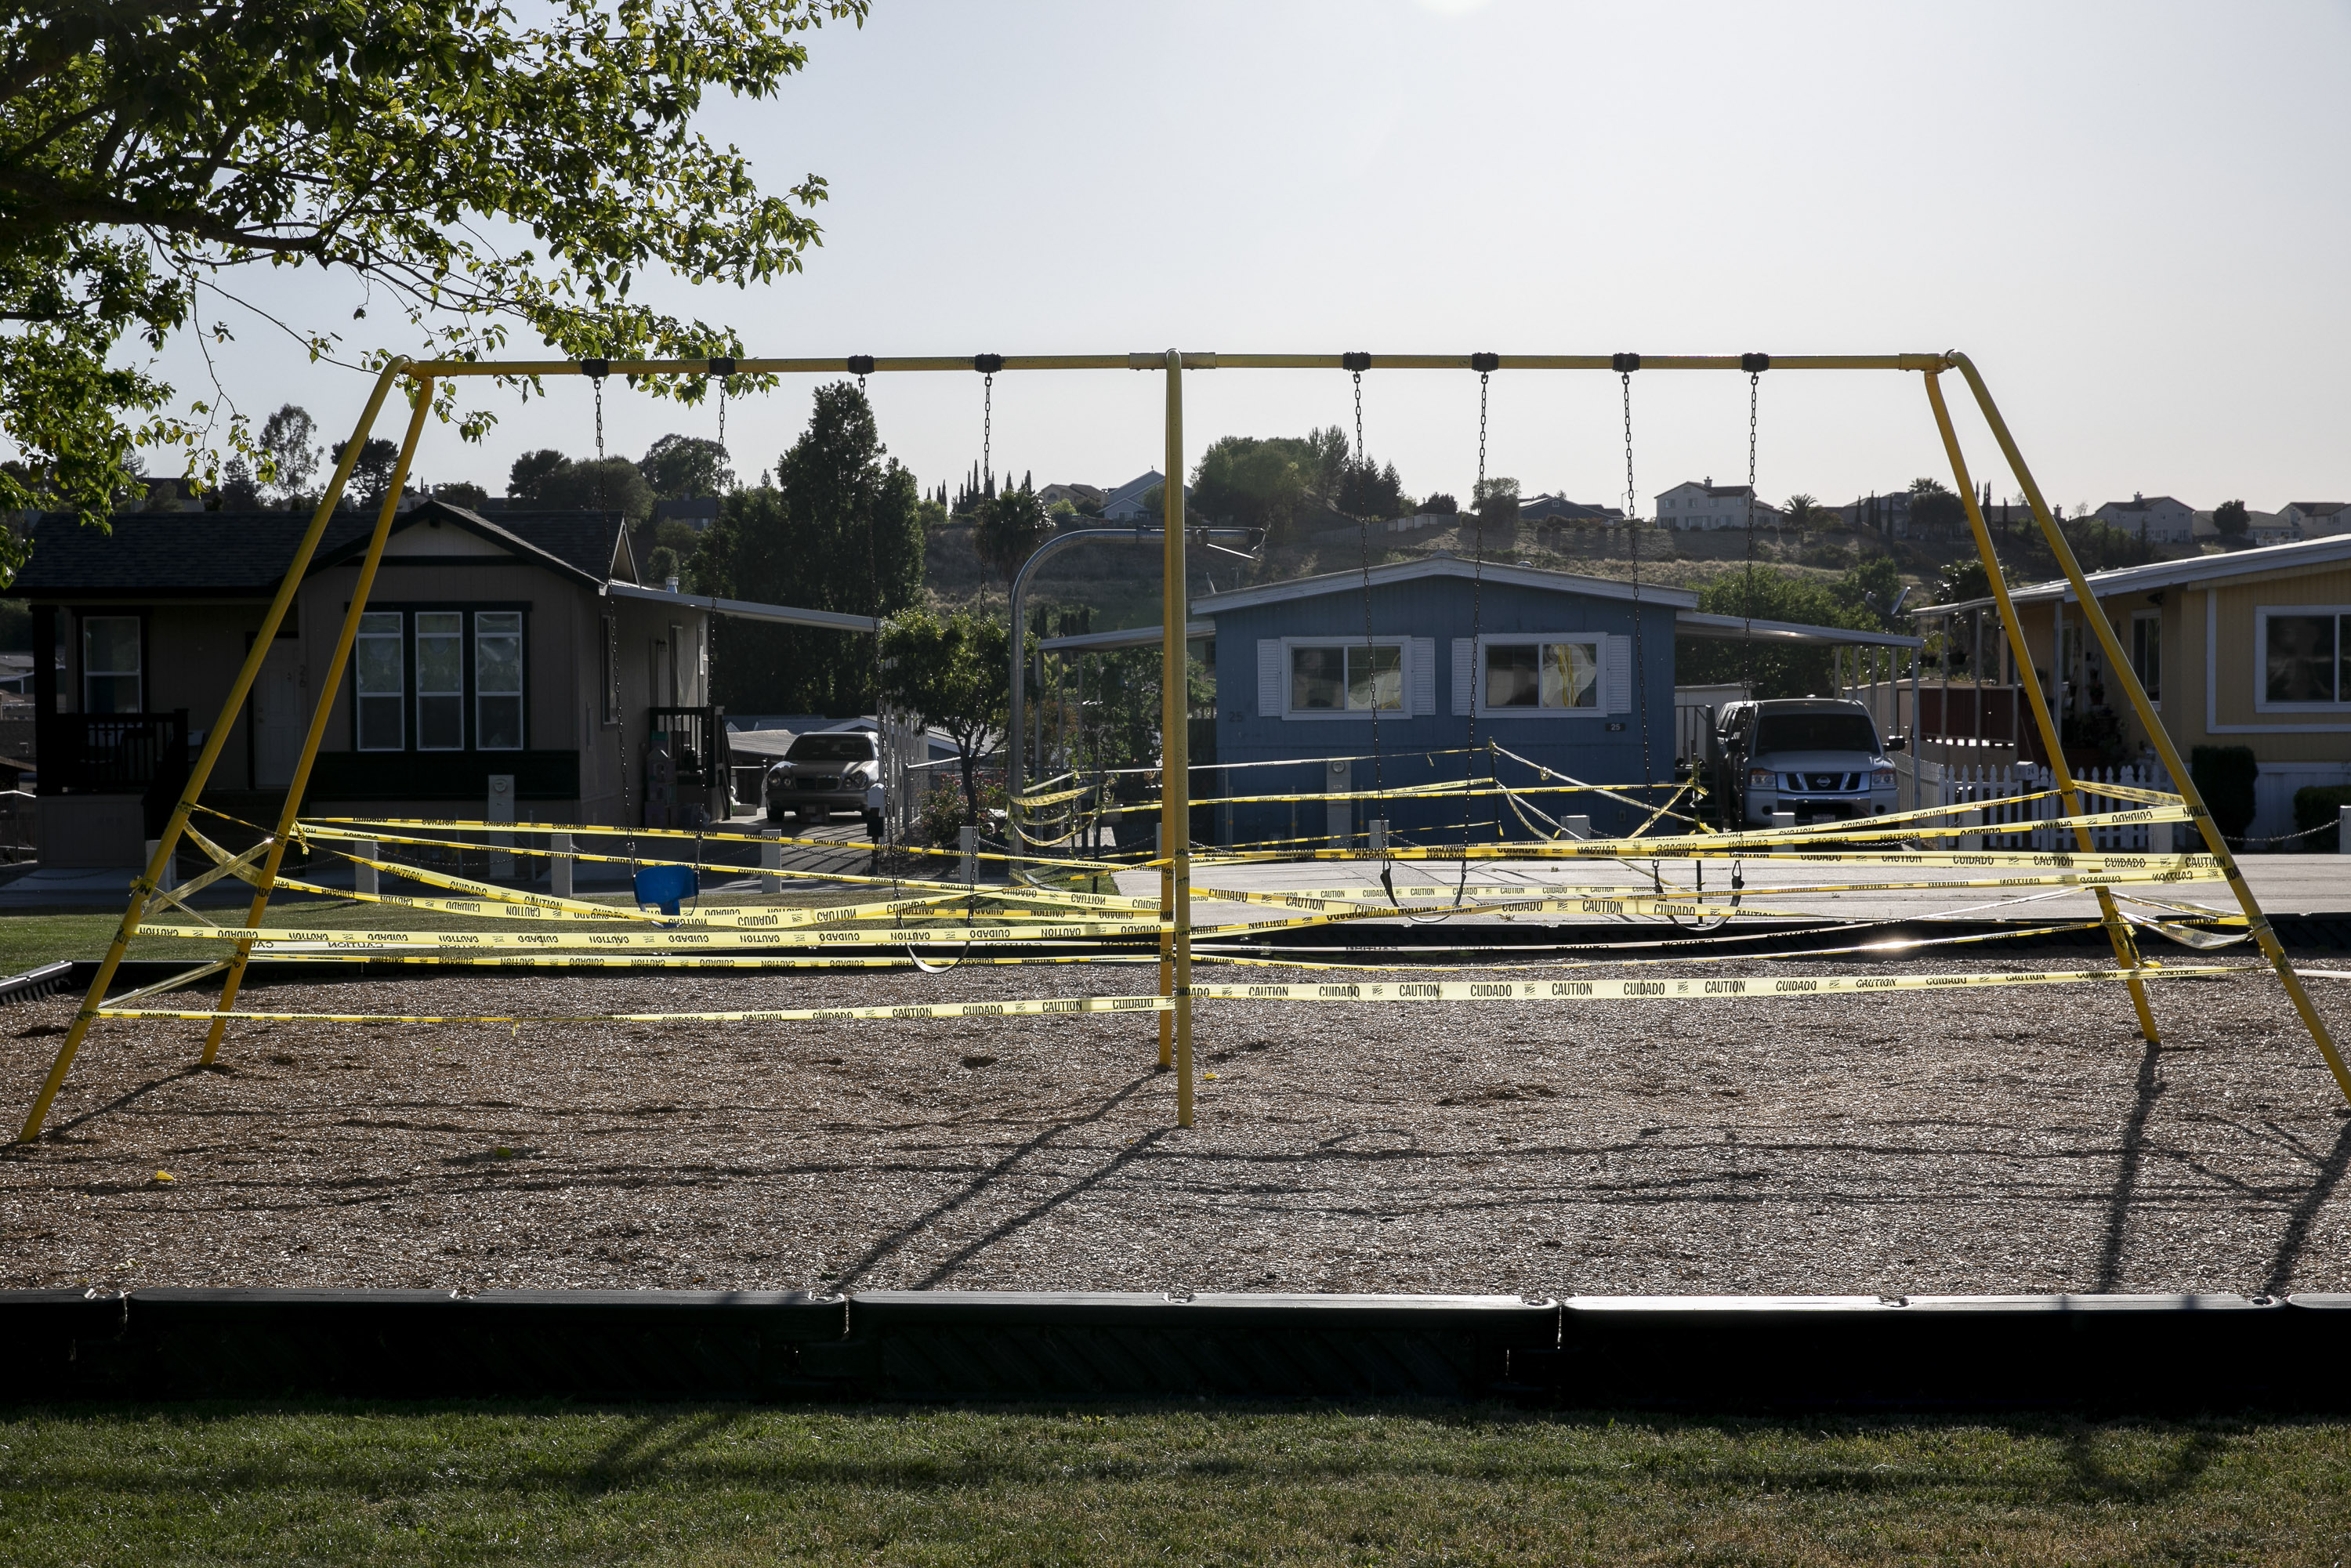 A taped-off swing set at Fairgrounds mobile home park in American Canyon on May 6, 2020. Photo by Anne Wernikoff for CalMatters